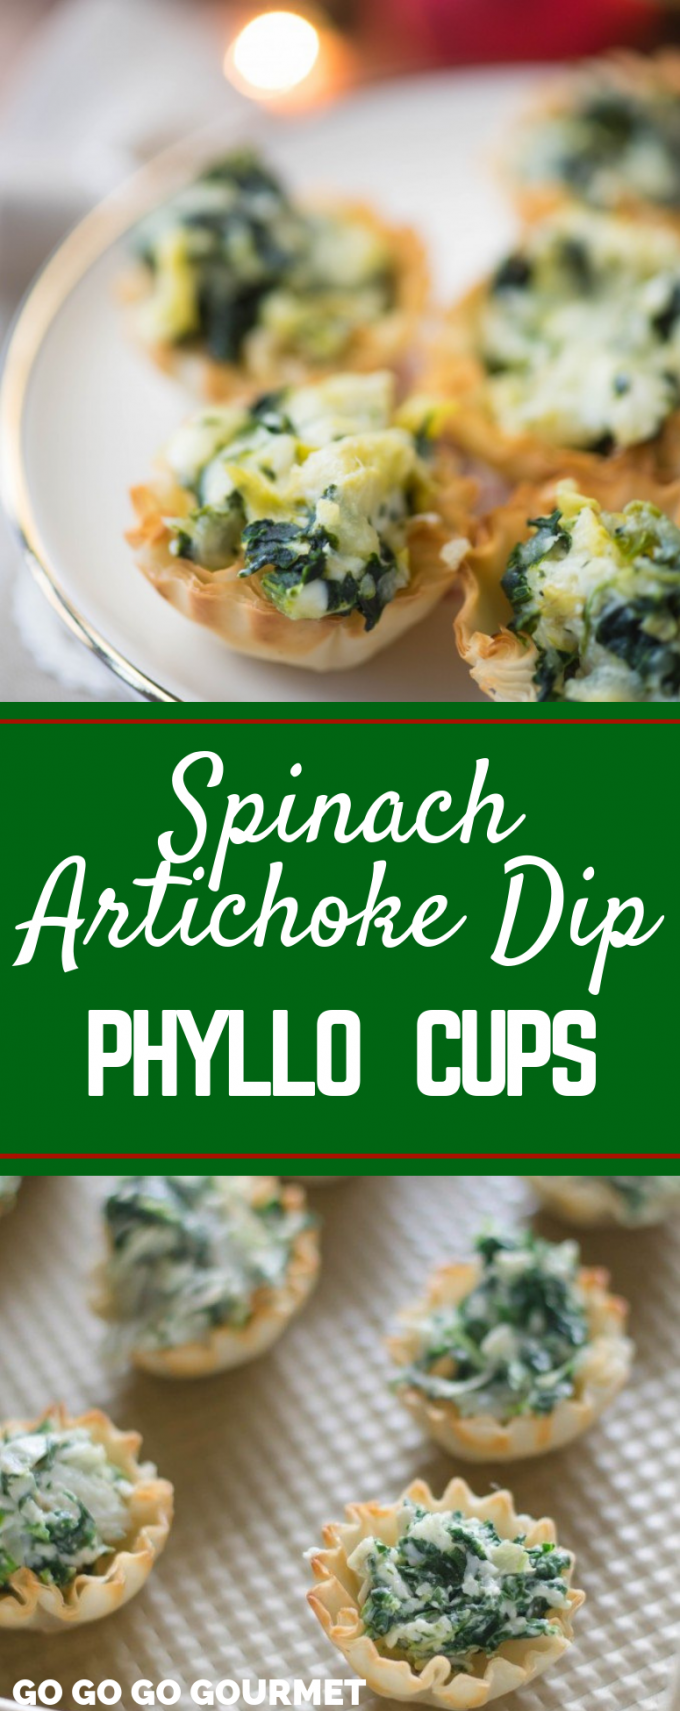 These easy Baked Spinach Artichoke Dip Cup Bites are the perfect party appetizers! Full of veggies, this recipe is one of the best finger foods! Make or freeze them ahead of time and bake when you need them! #gogogogourmet #spinachartichokedipbites #appetizer #christmas #partyfoods #partyfoodrecipes #holidayparty  via @gogogogourmet